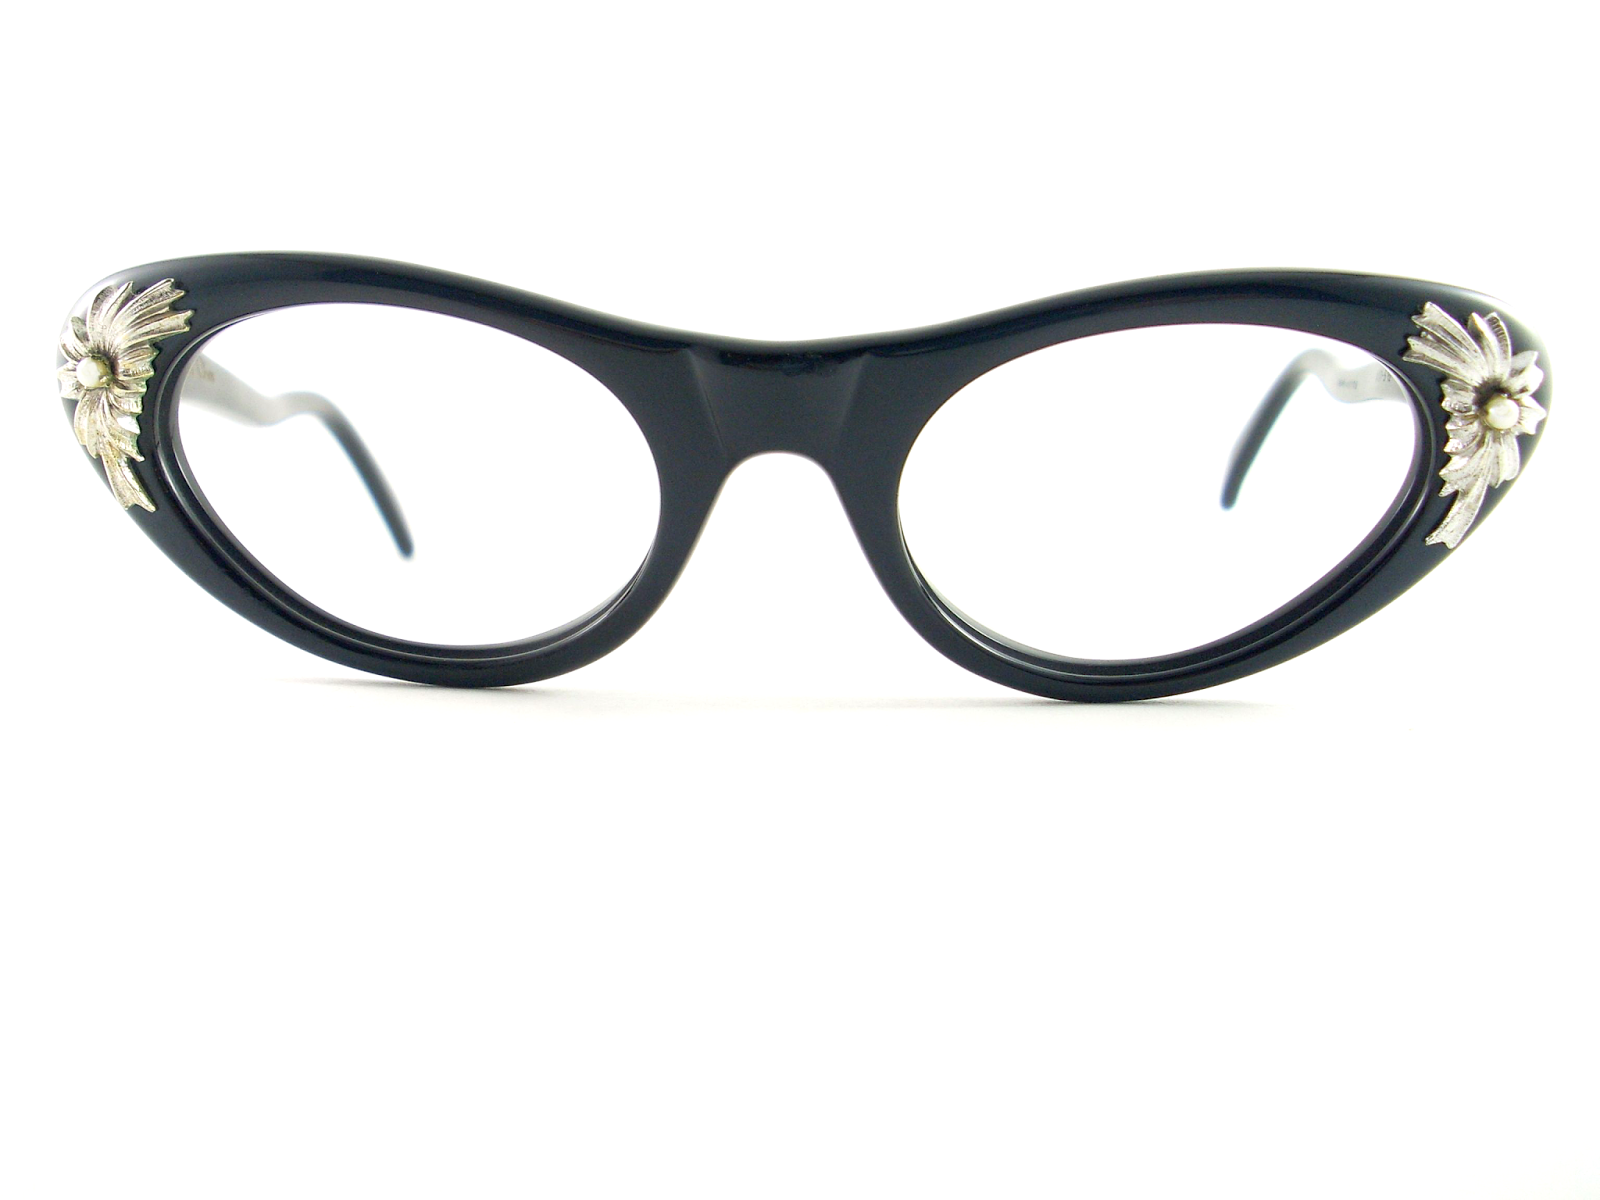 Eyeglass Frames 2015 : Vintage Eyeglasses Frames Eyewear Sunglasses 50S: January 2015